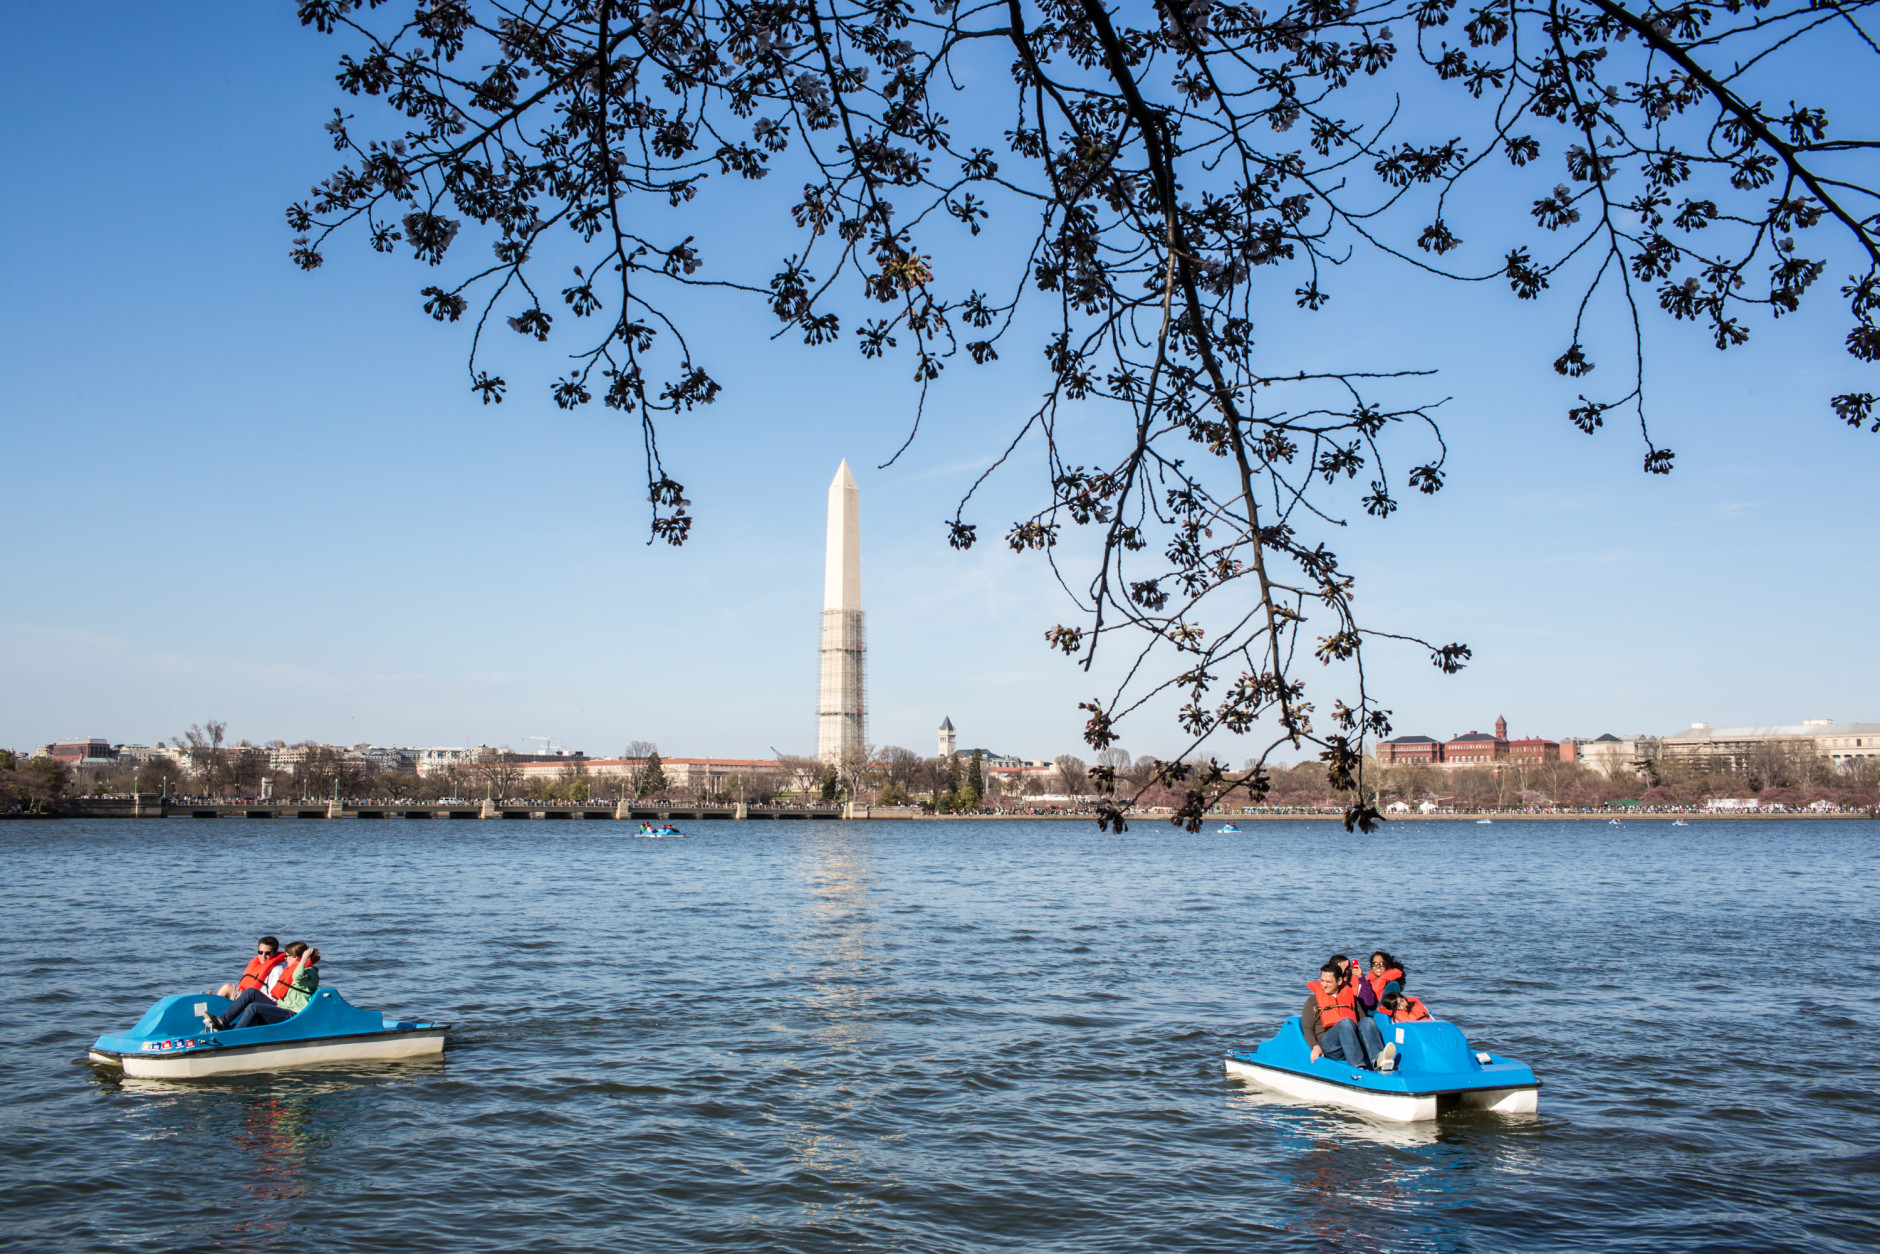 WASHINGTON, DC - APRIL 7: People cruise on paddle boats around the Tidal Basin where cherry trees are just beginning to bloom on April 7, 2013 in Washington, DC. The blossoms are late this year, a result of a cooler than average spring. (Photo by Brendan Hoffman/Getty Images)